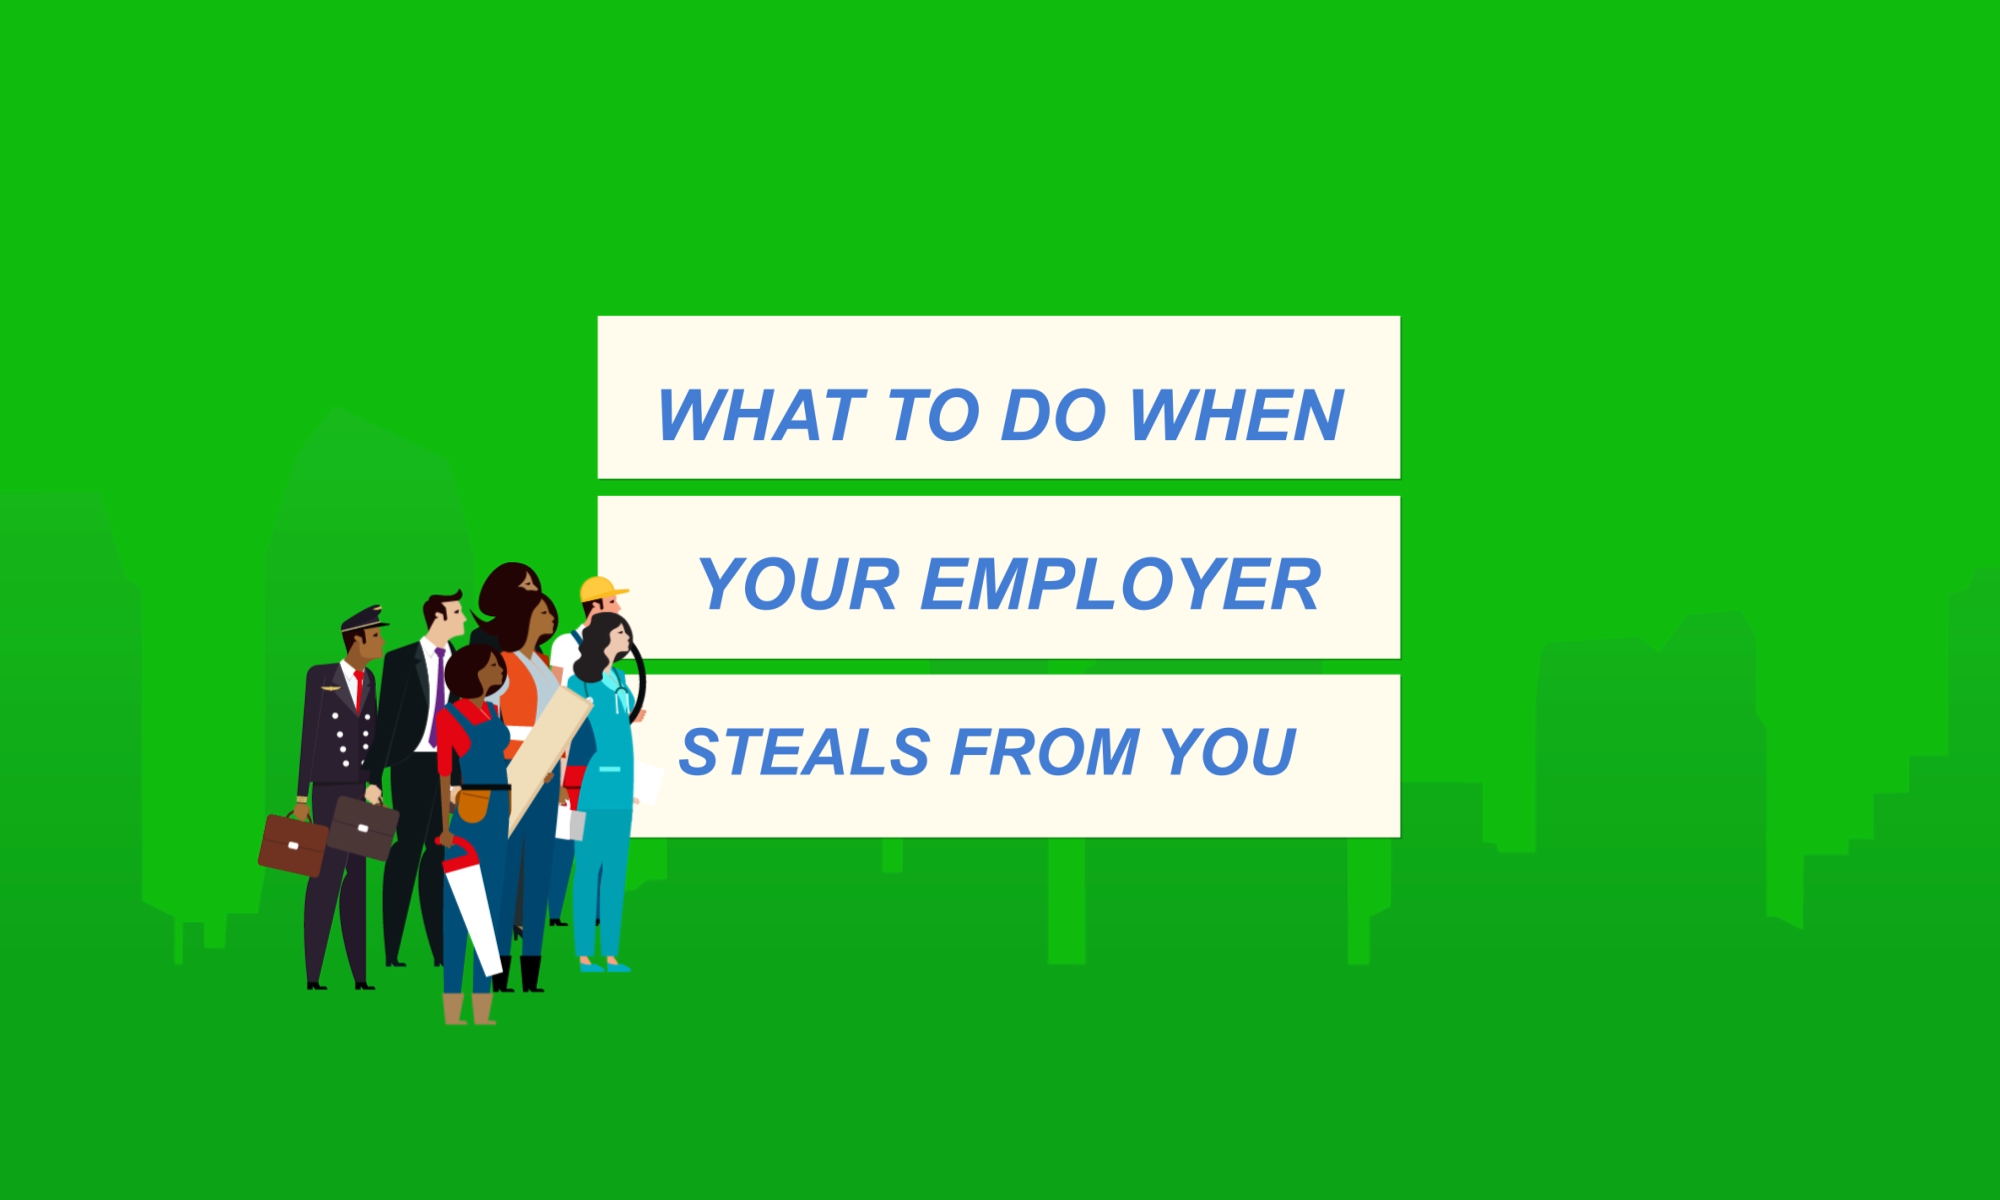 My Employer Stole From Me